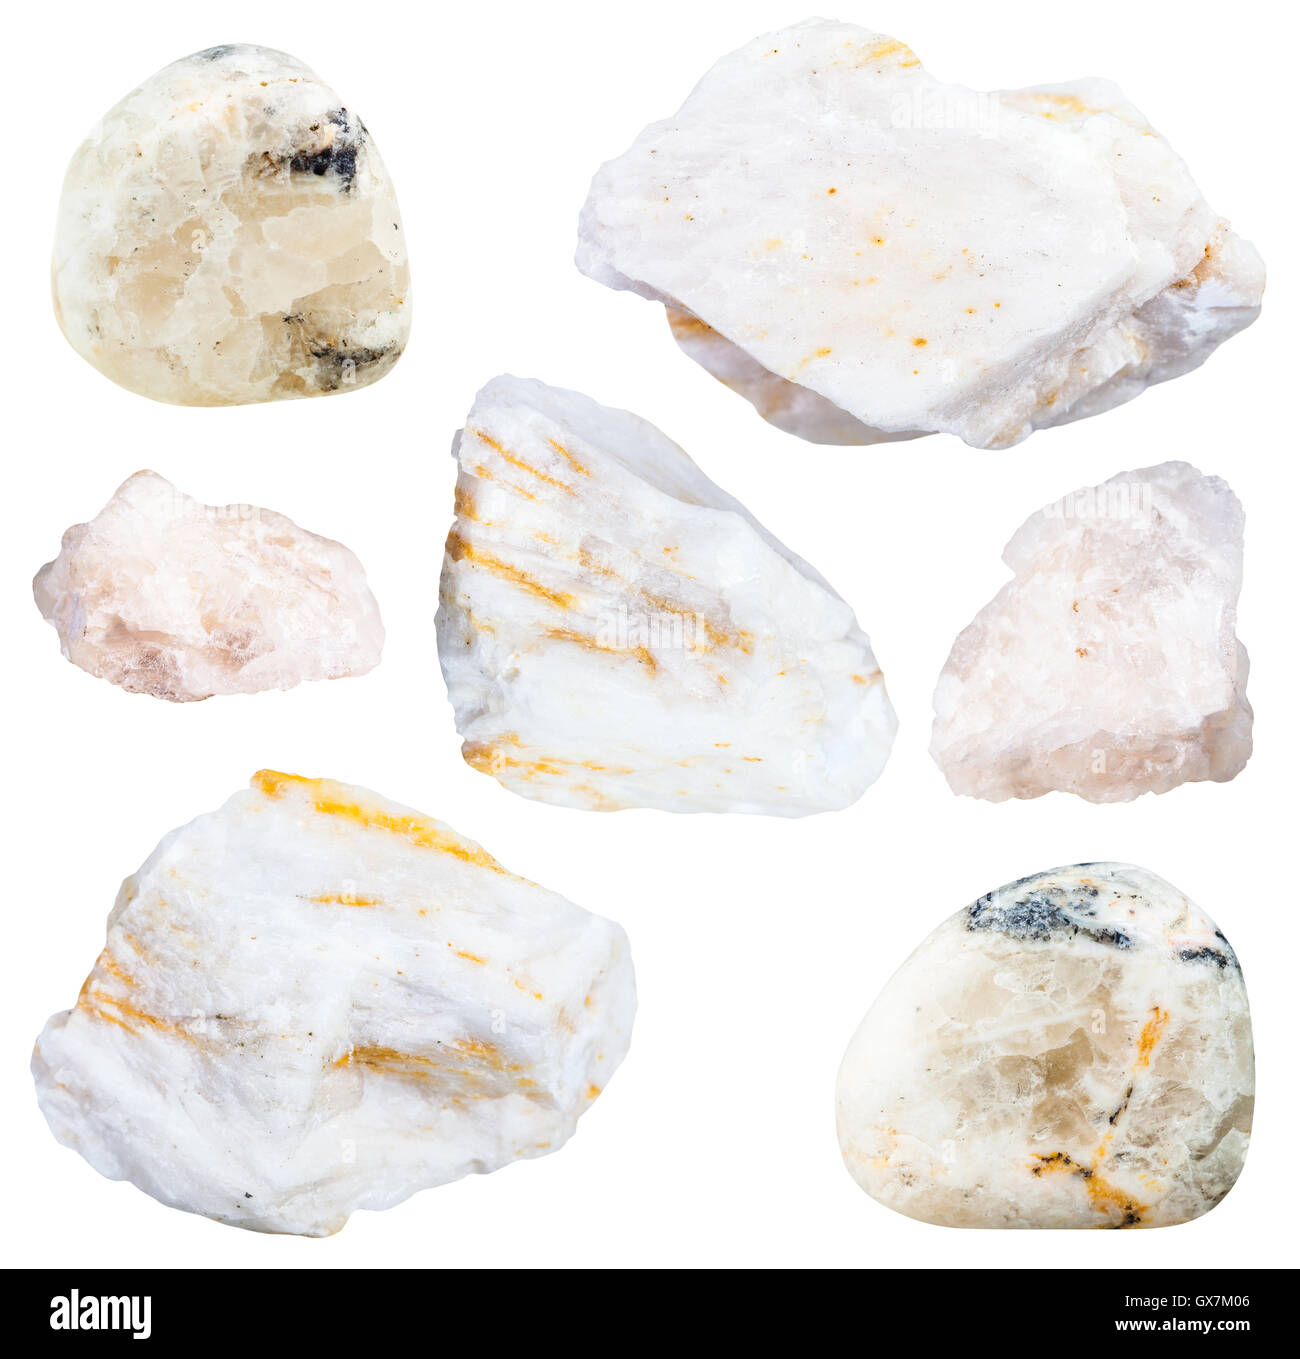 collection from specimens of barite ore isolated on white background - Stock Image